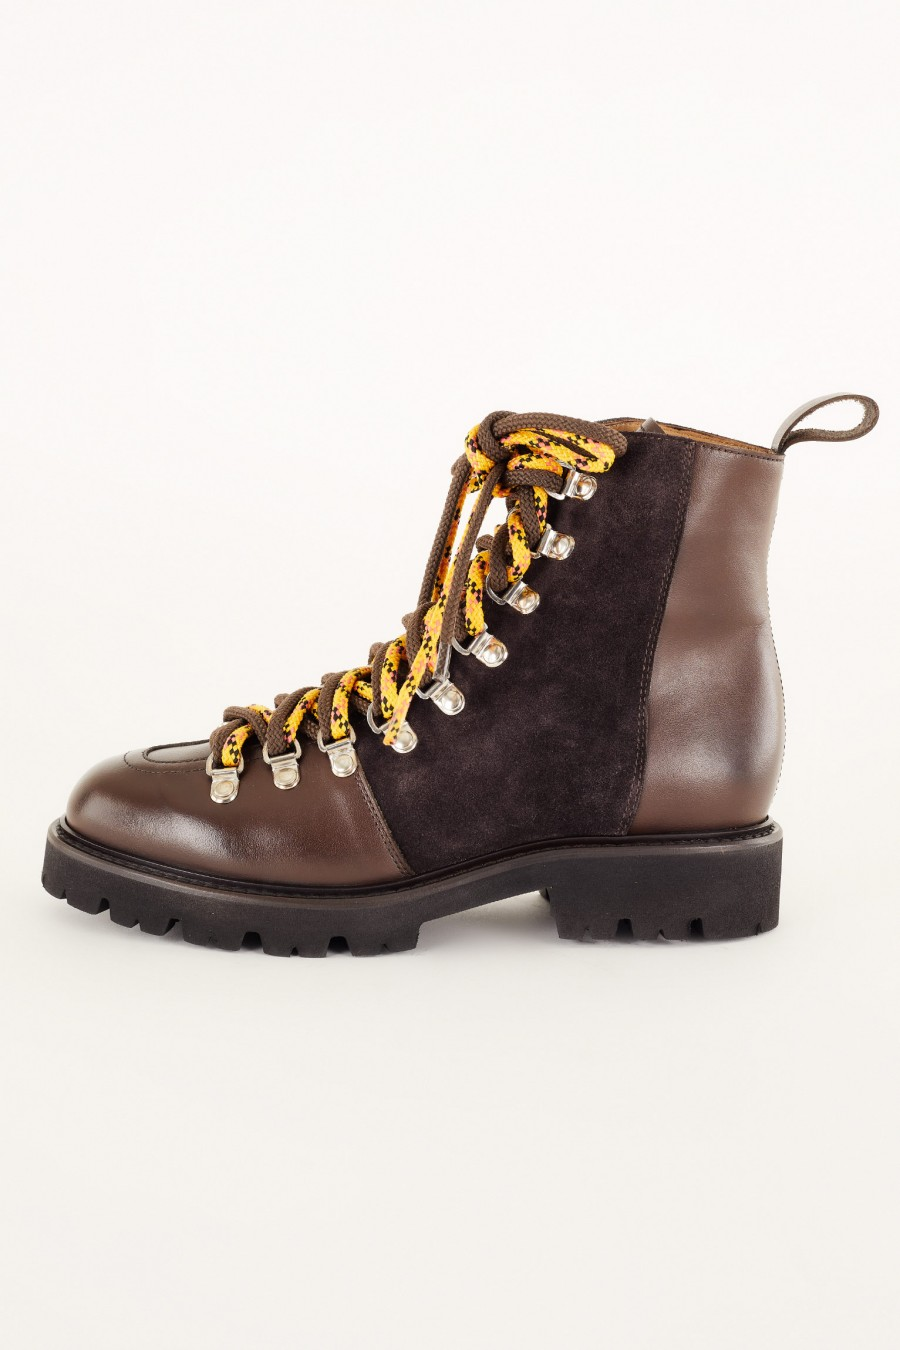 pedula-style boots with yellow laces